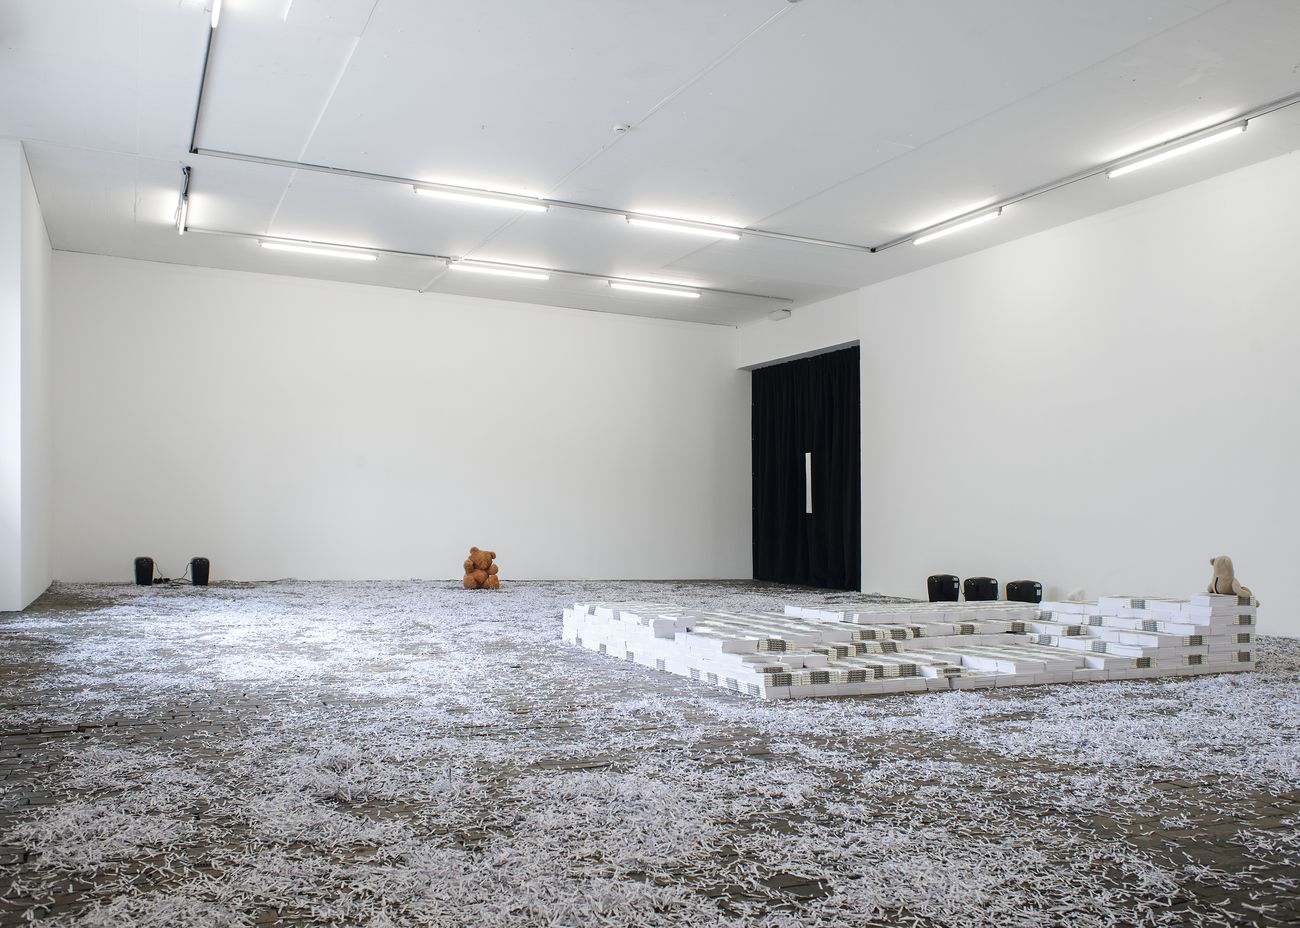 Hannah Black, The Situation, 2017 & Transitional Objects, 2017. Exhibition view of ANXIETINA by Hannah Black, Bonaventure & Ebba Fransén Waldhör at Centre d'Art Contemporain Genève, 2018. Courtesy of the artists. Photo Charlotte Krieger